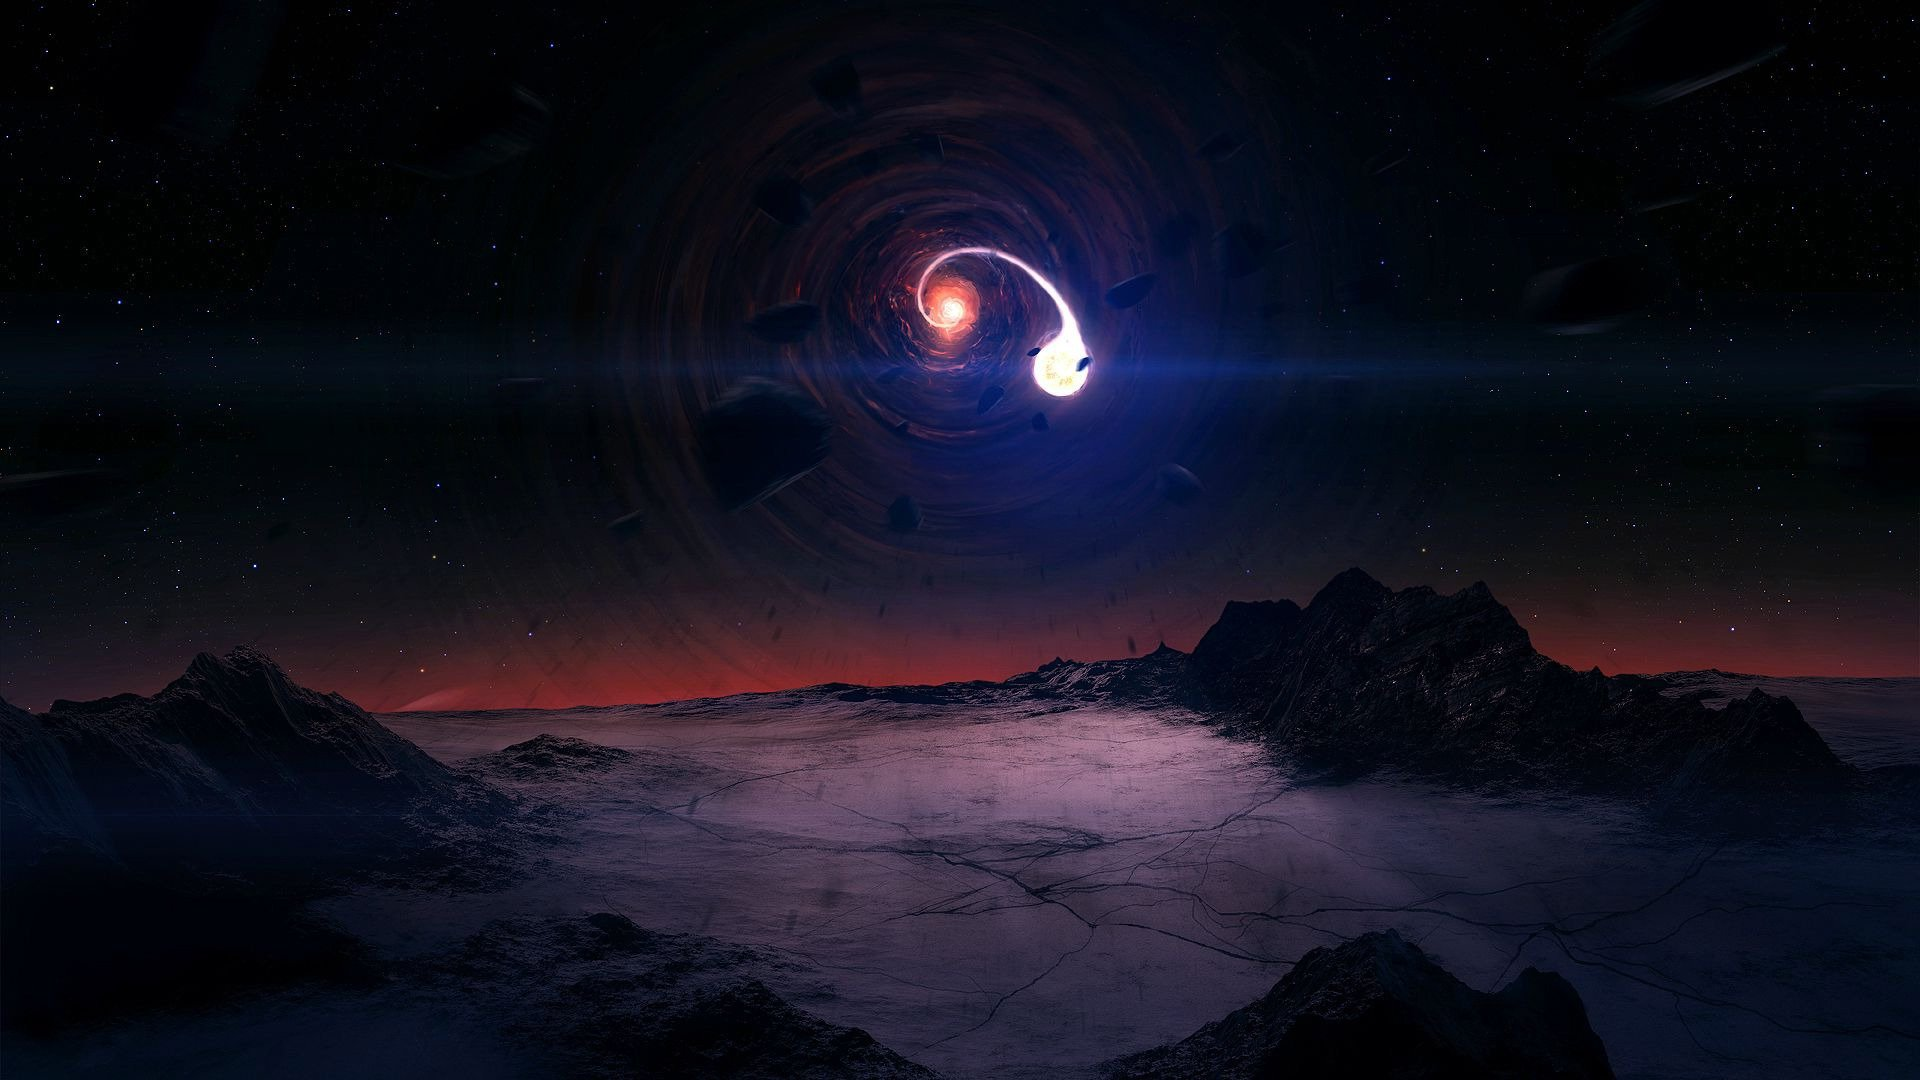 HD Black Hole Wallpapers 1920x1080